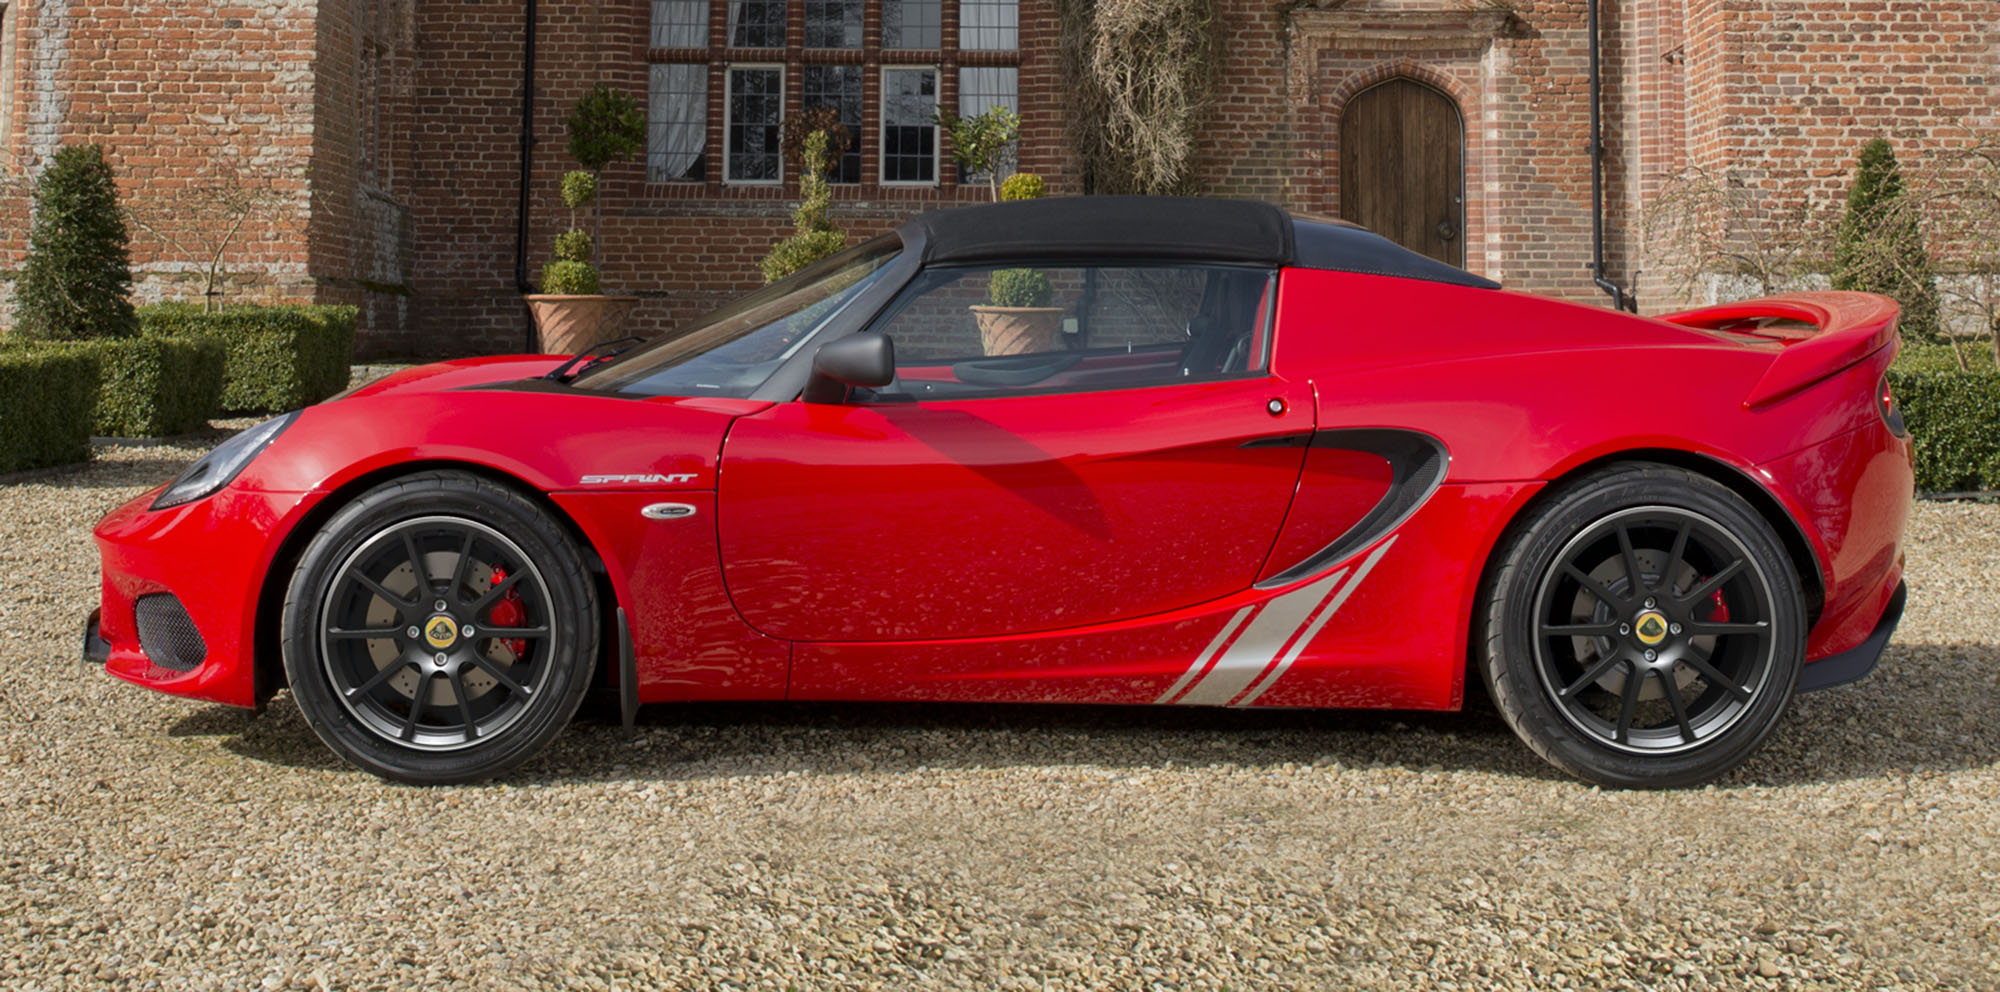 2017 Lotus Elise Sprint unveiled with less weight, changes ...